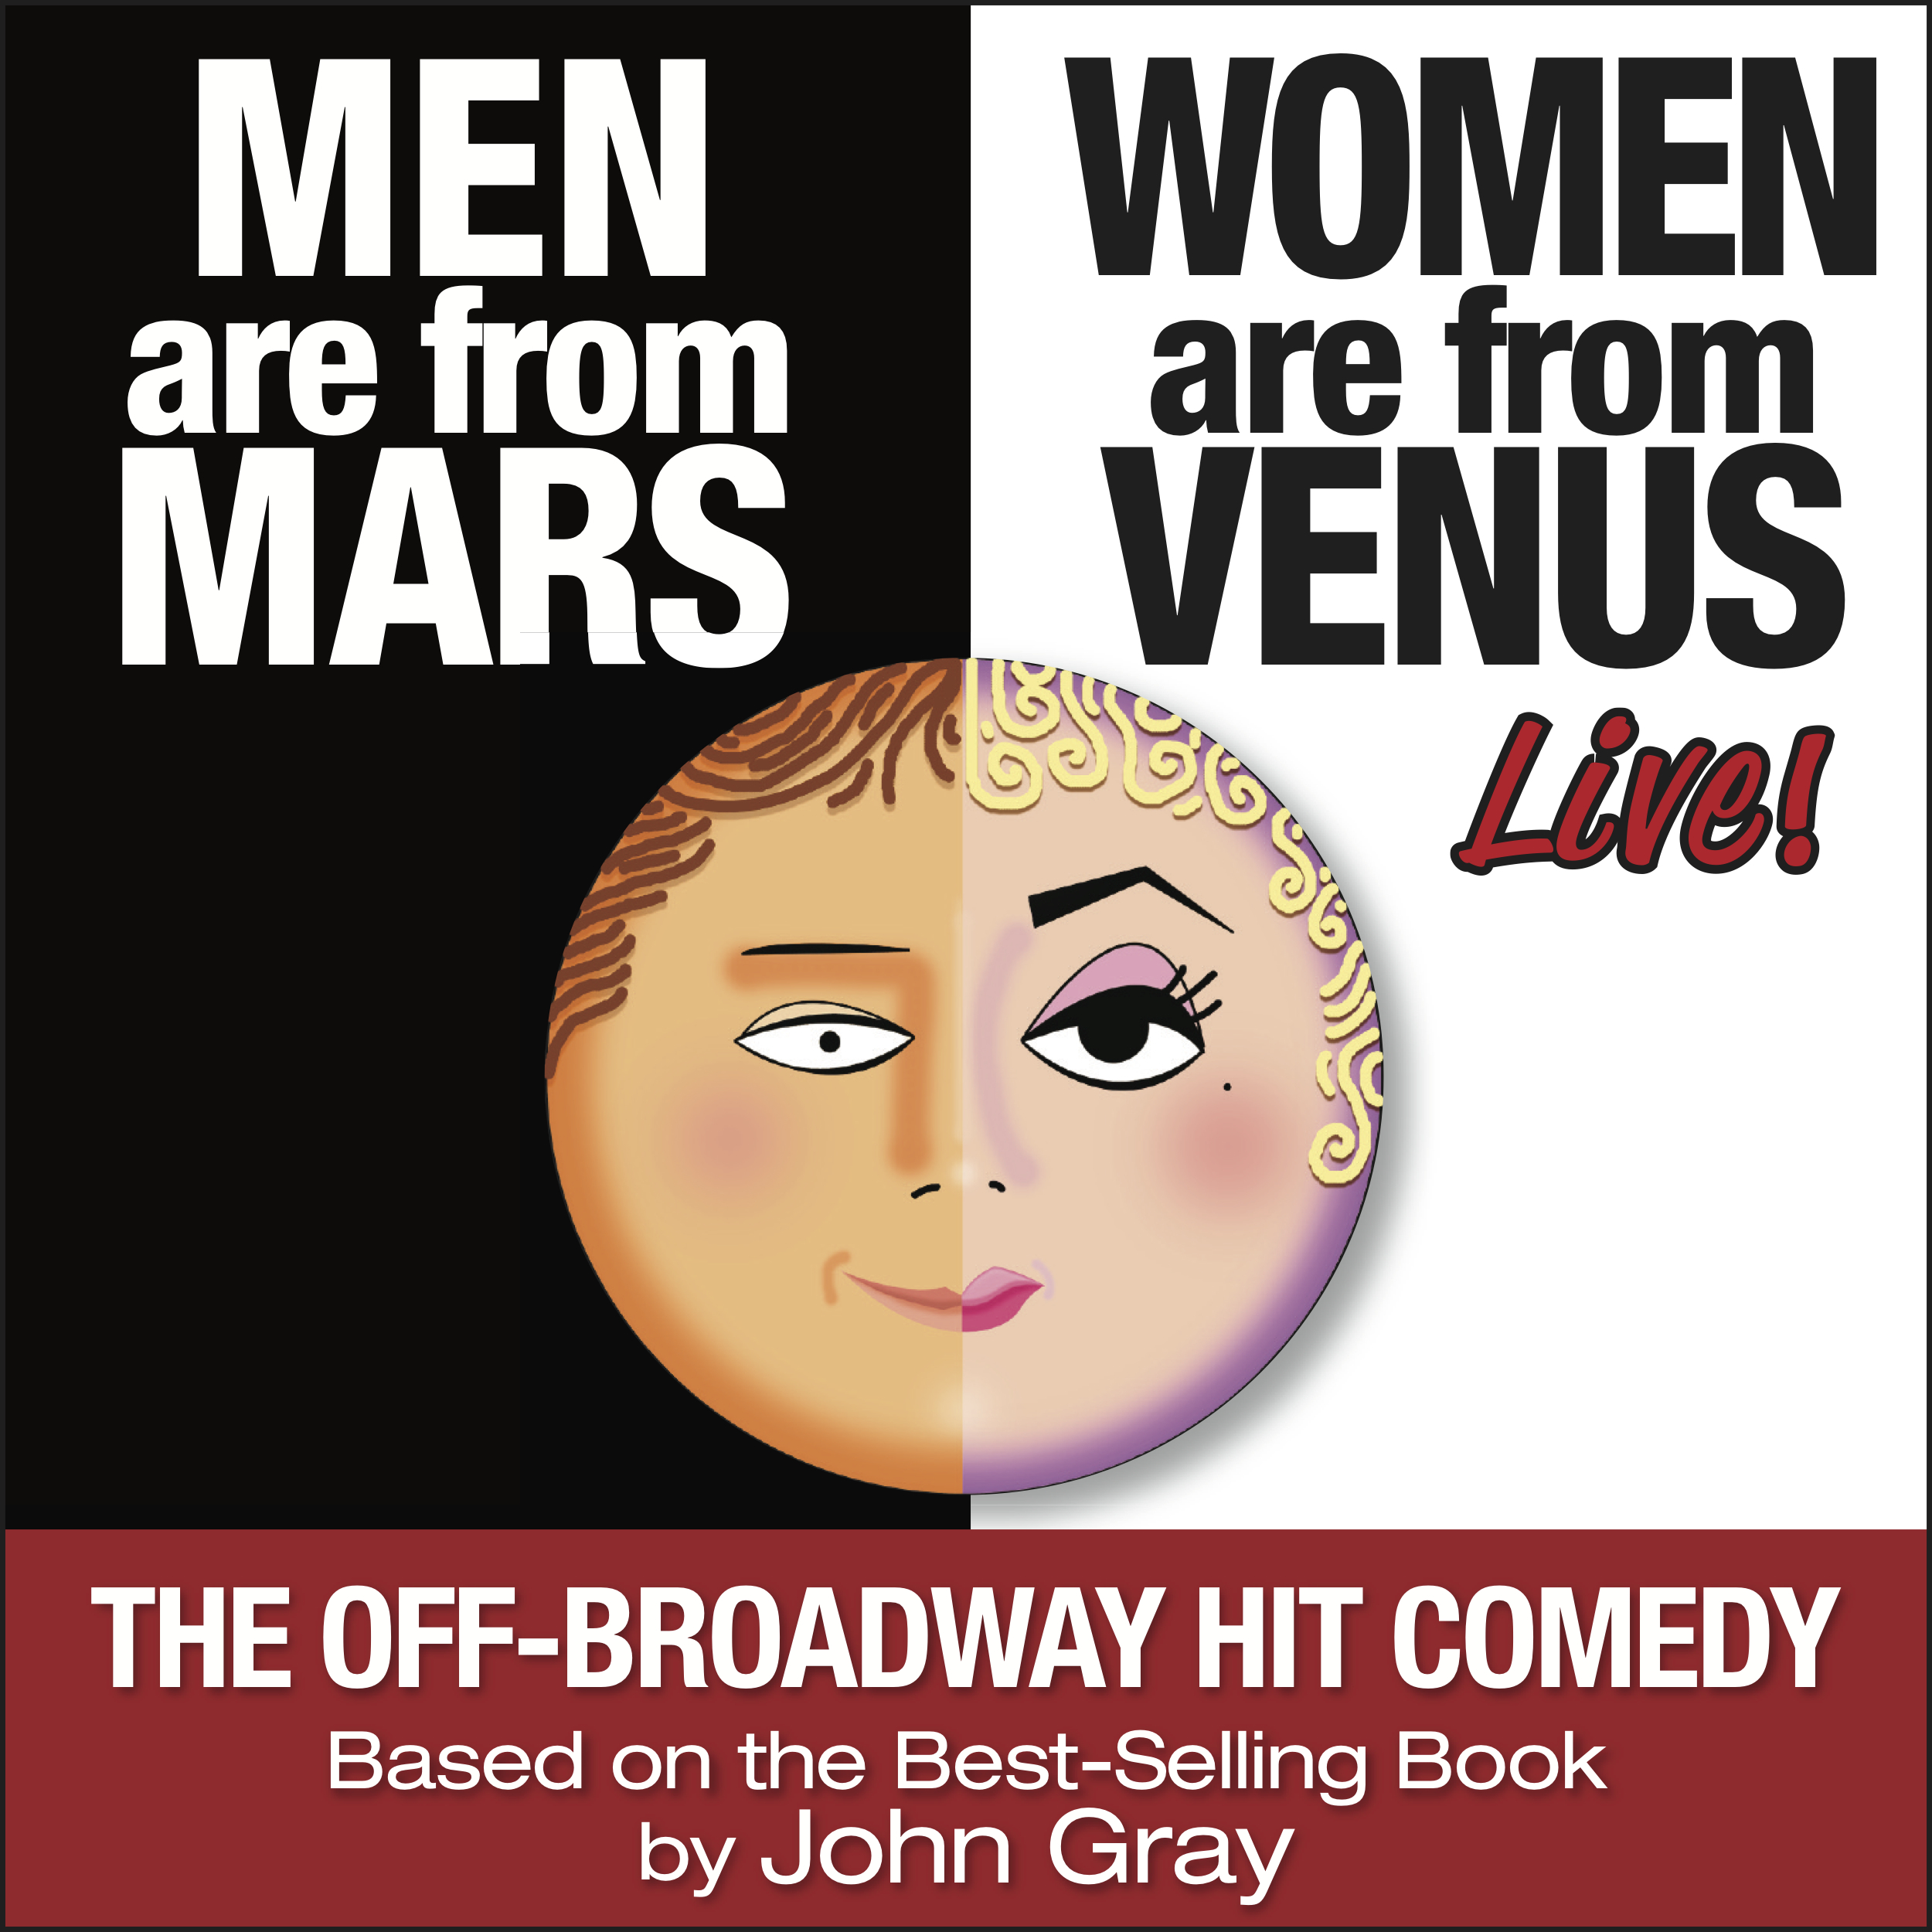 Men are from mars women are from venu